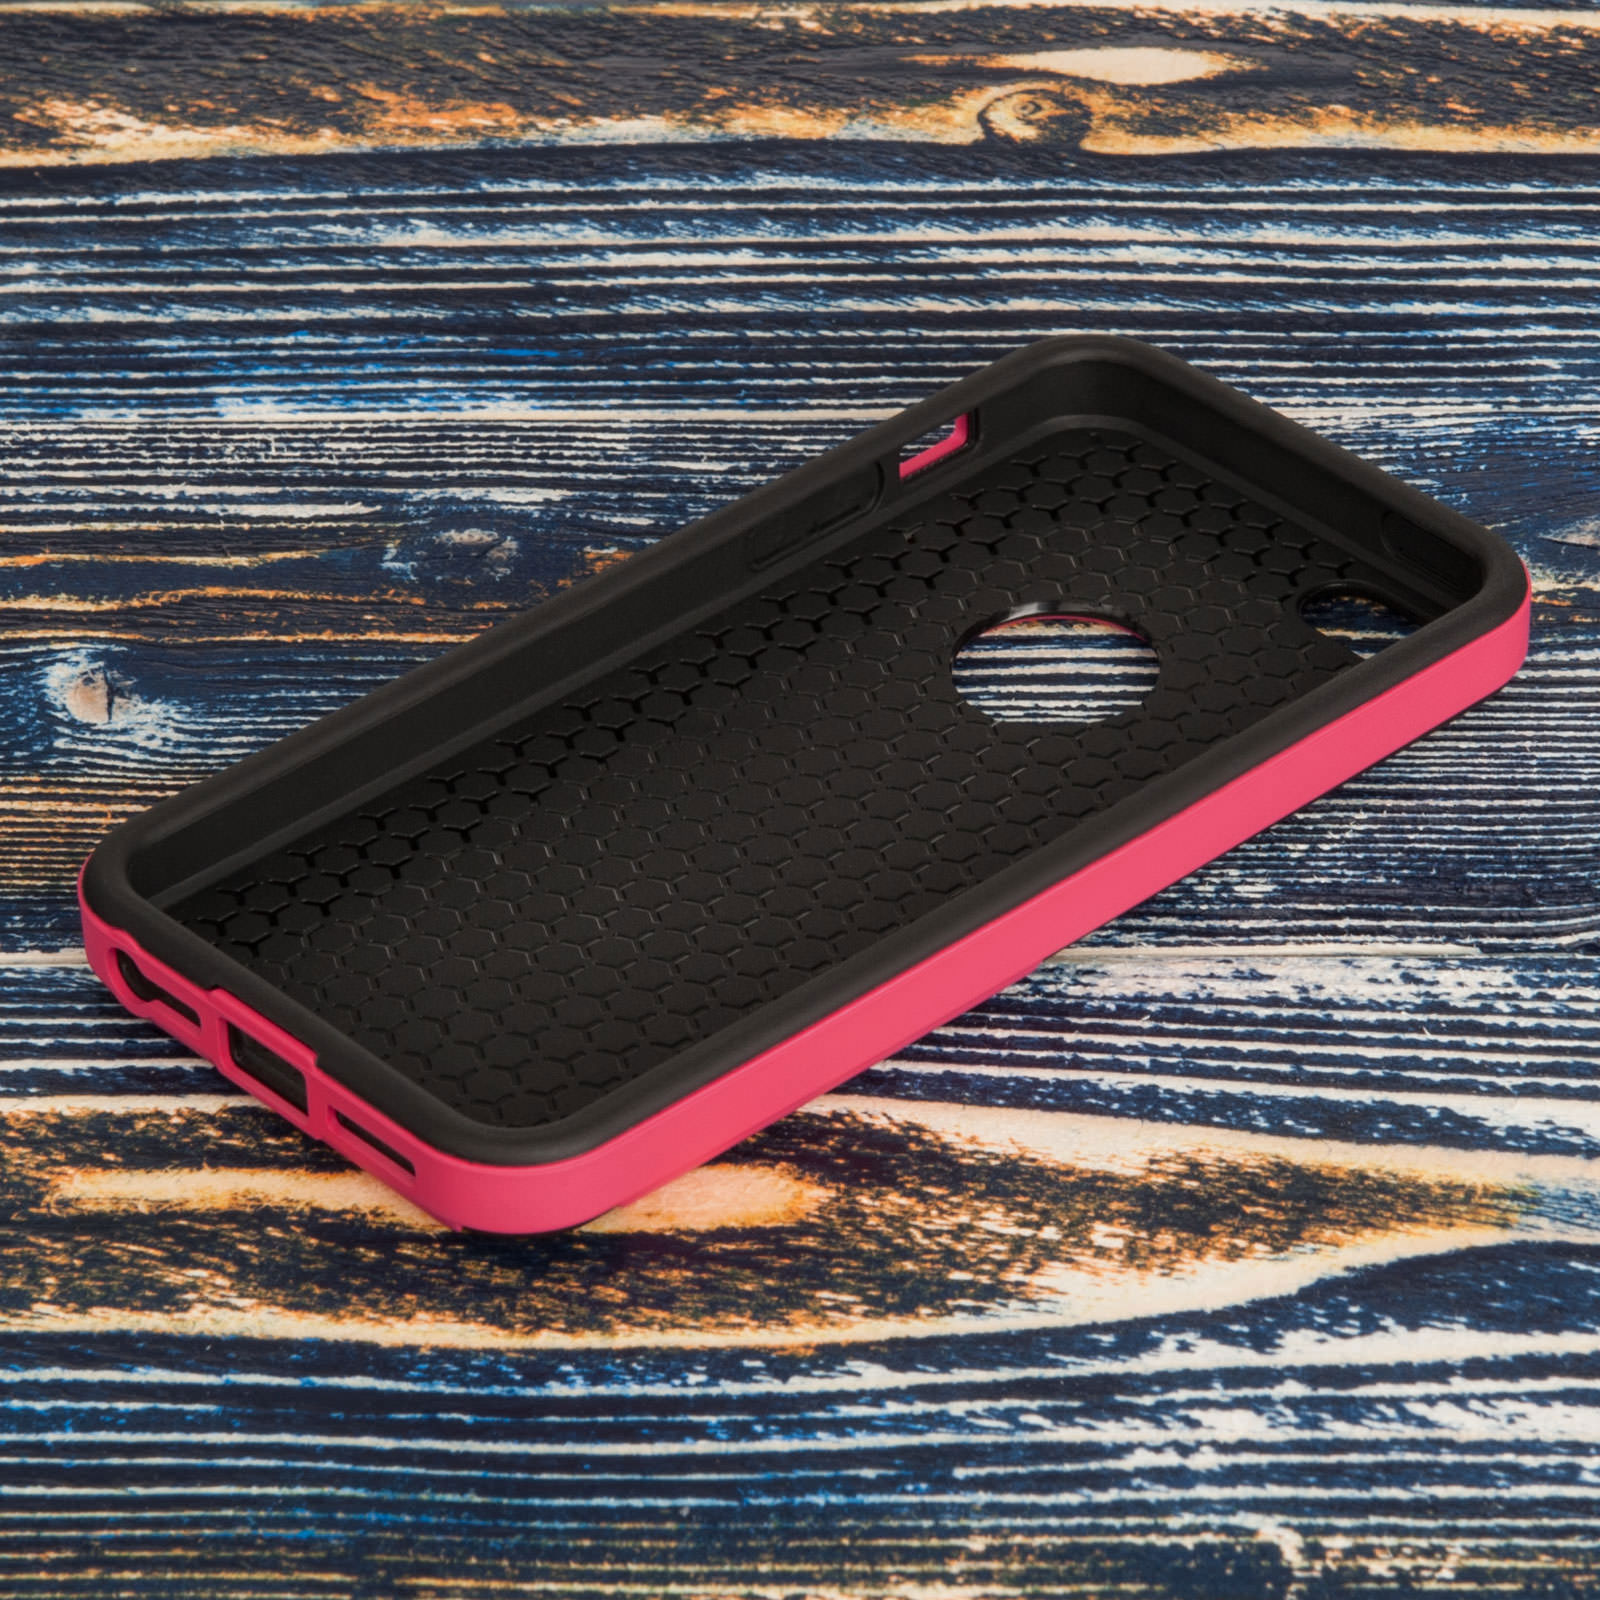 YouSave iPhone 5 / 5S / SE Border Combo Case - Hot Pink